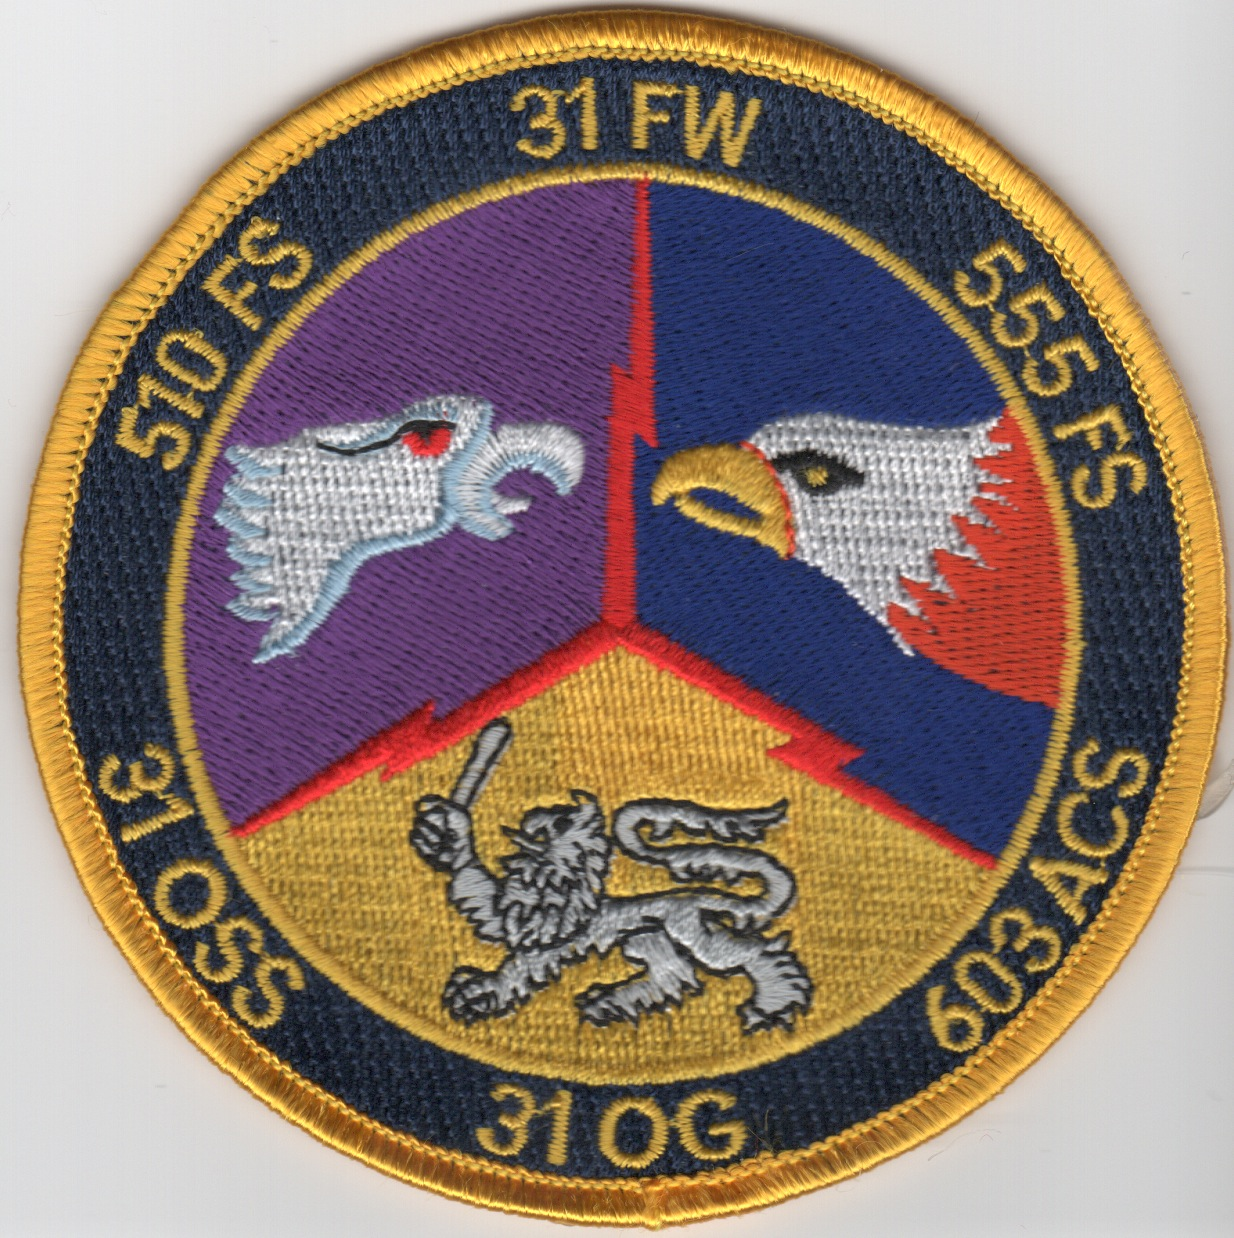 31FW 'Gaggle' Patch (3 Sqdn/Yellow Border)